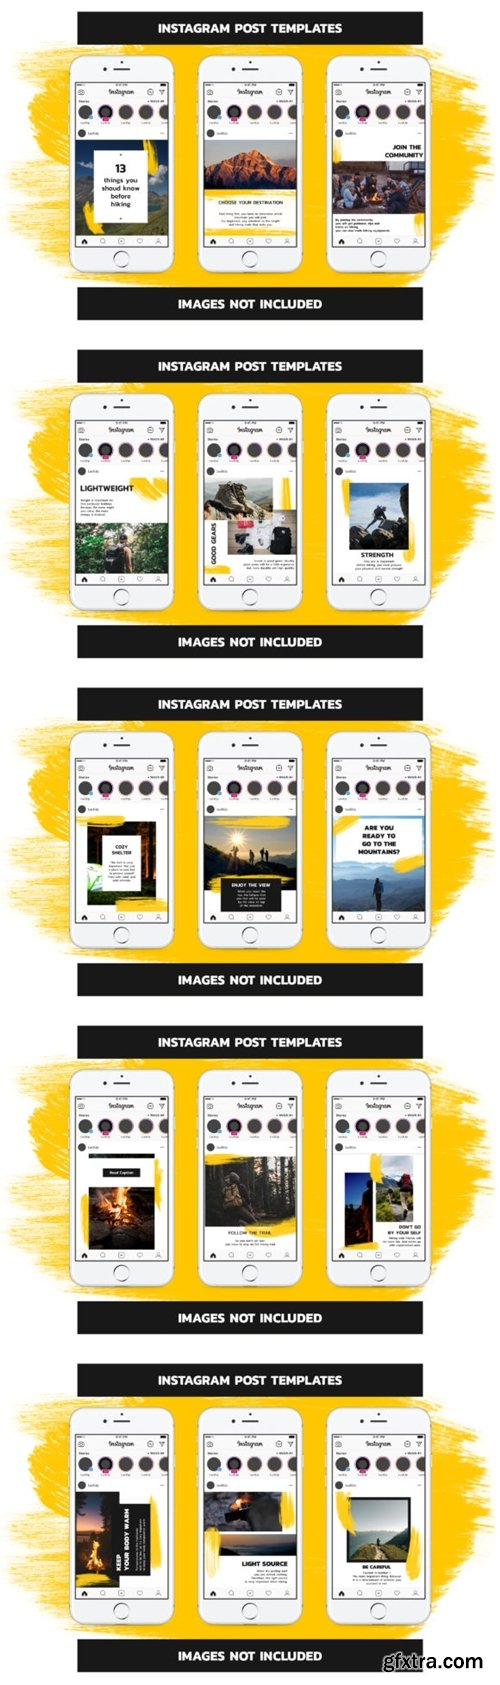 Hiking Instagram Templates